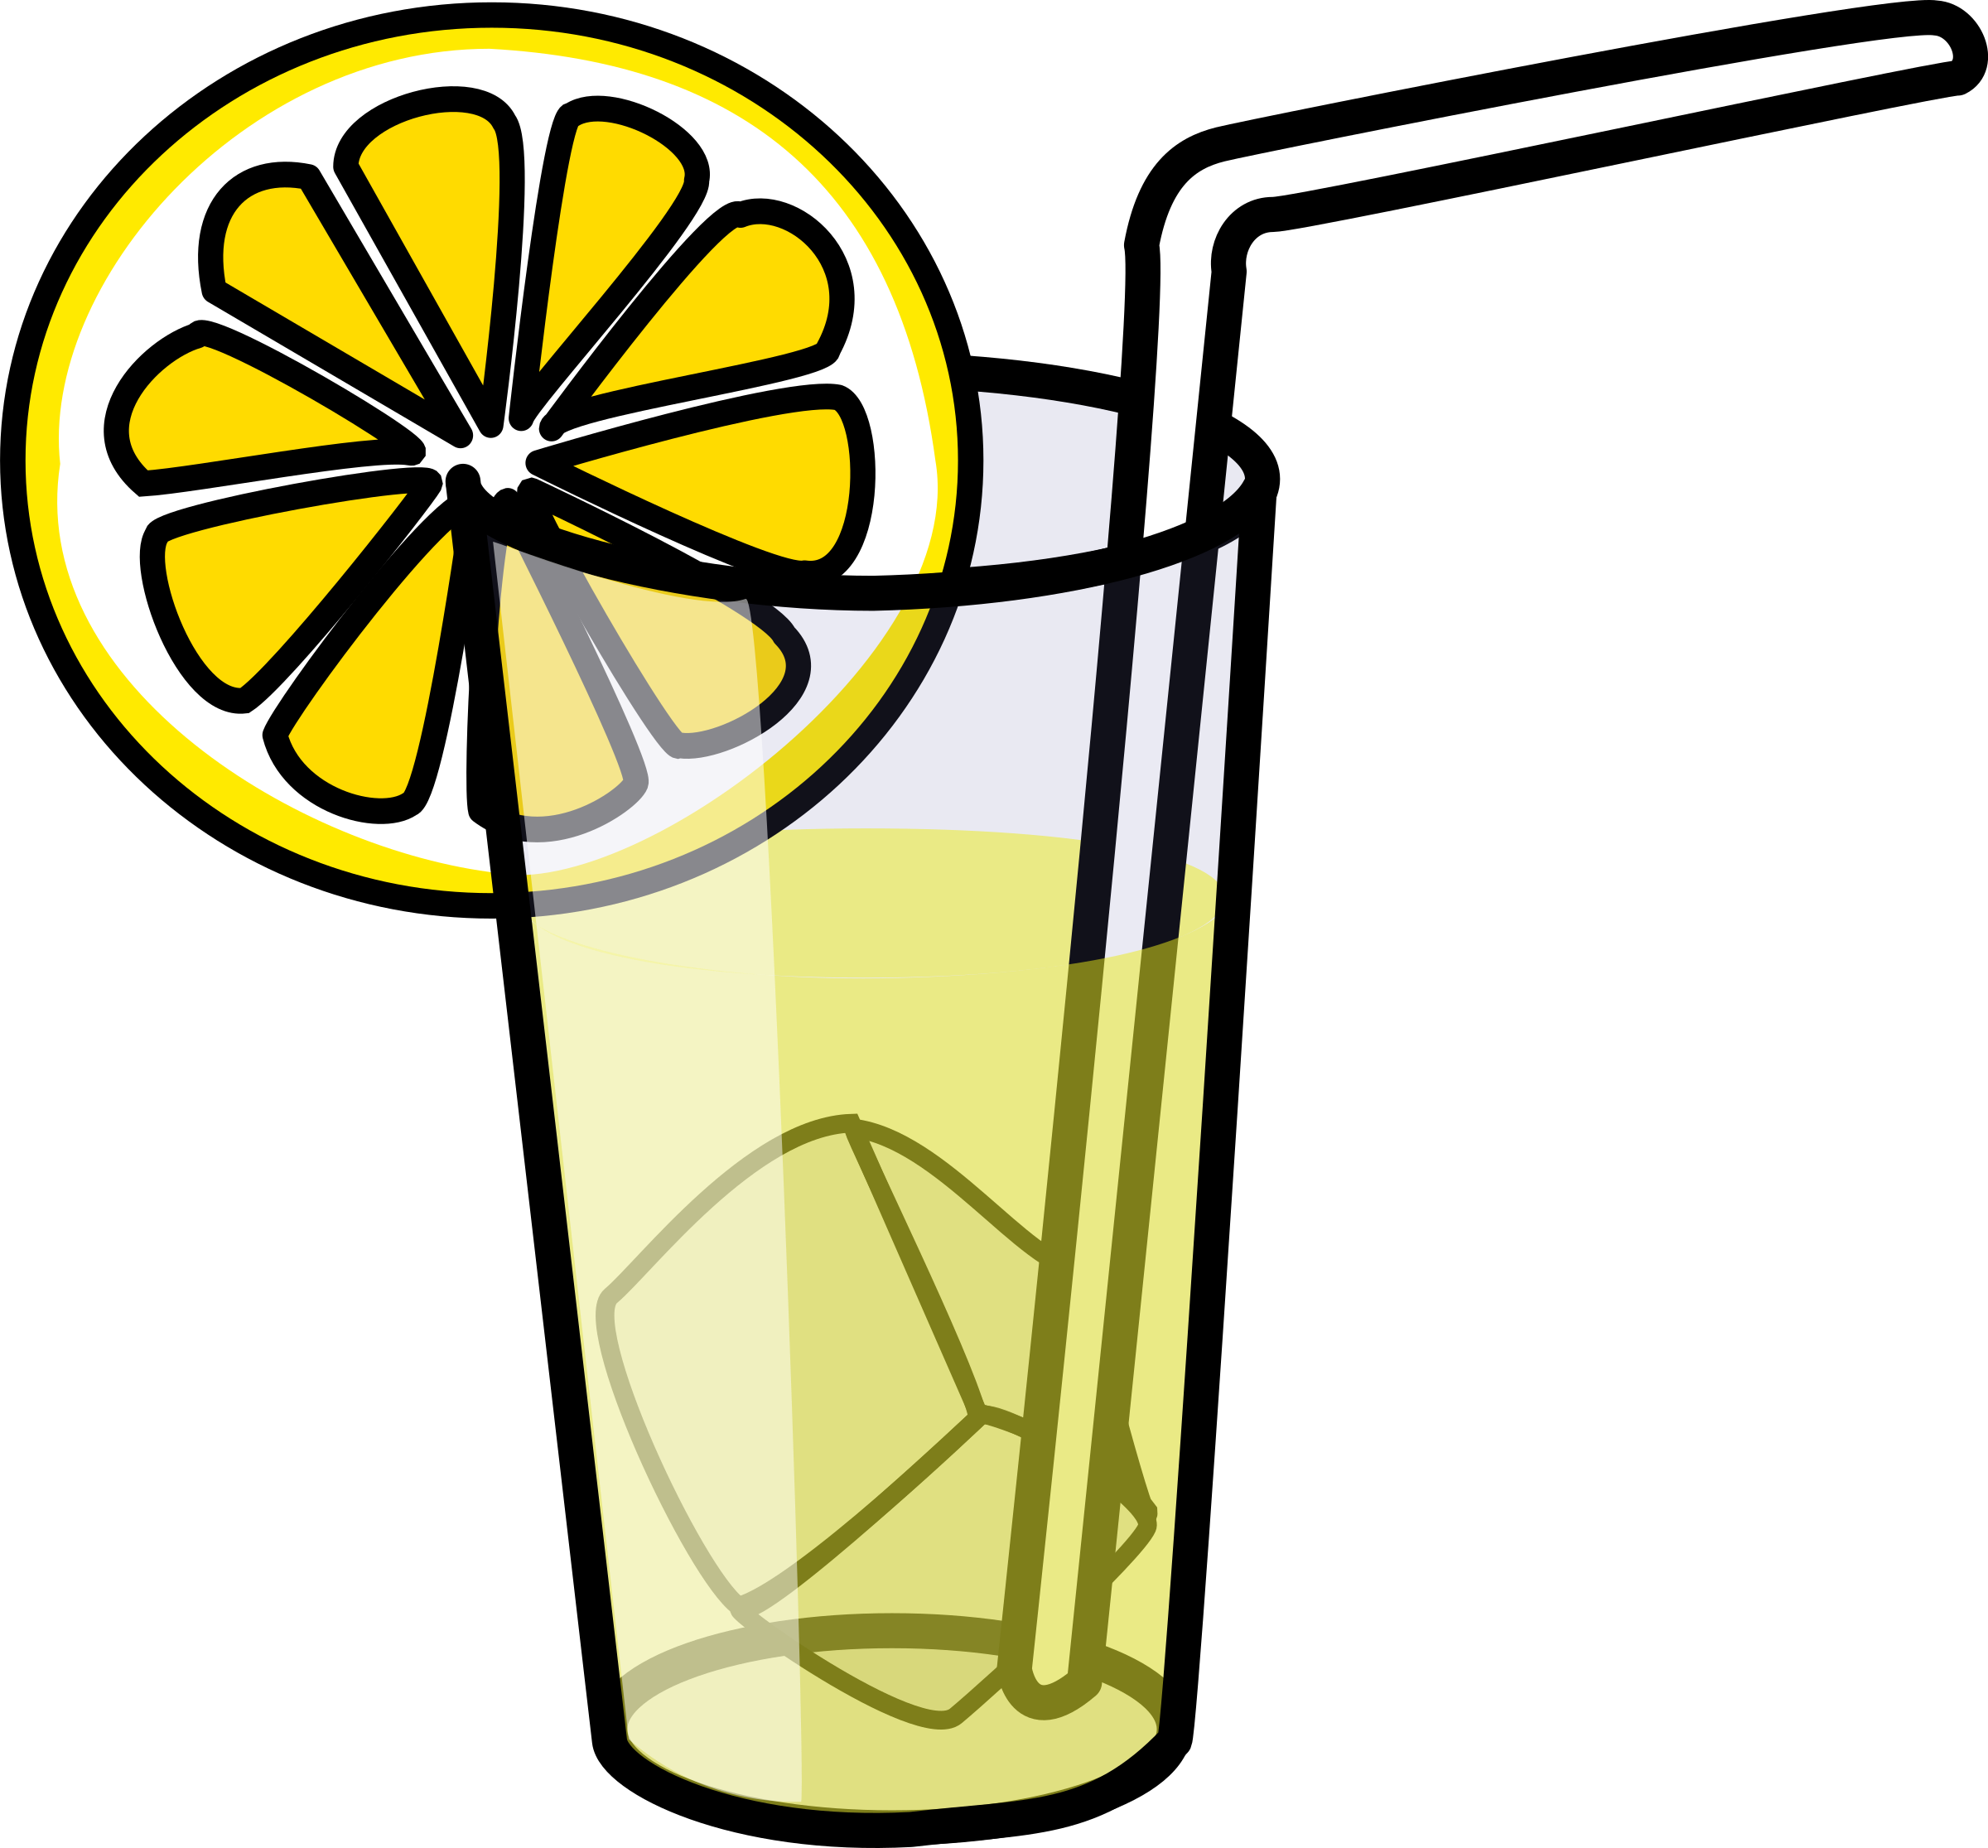 Image result for lemonade glass photo